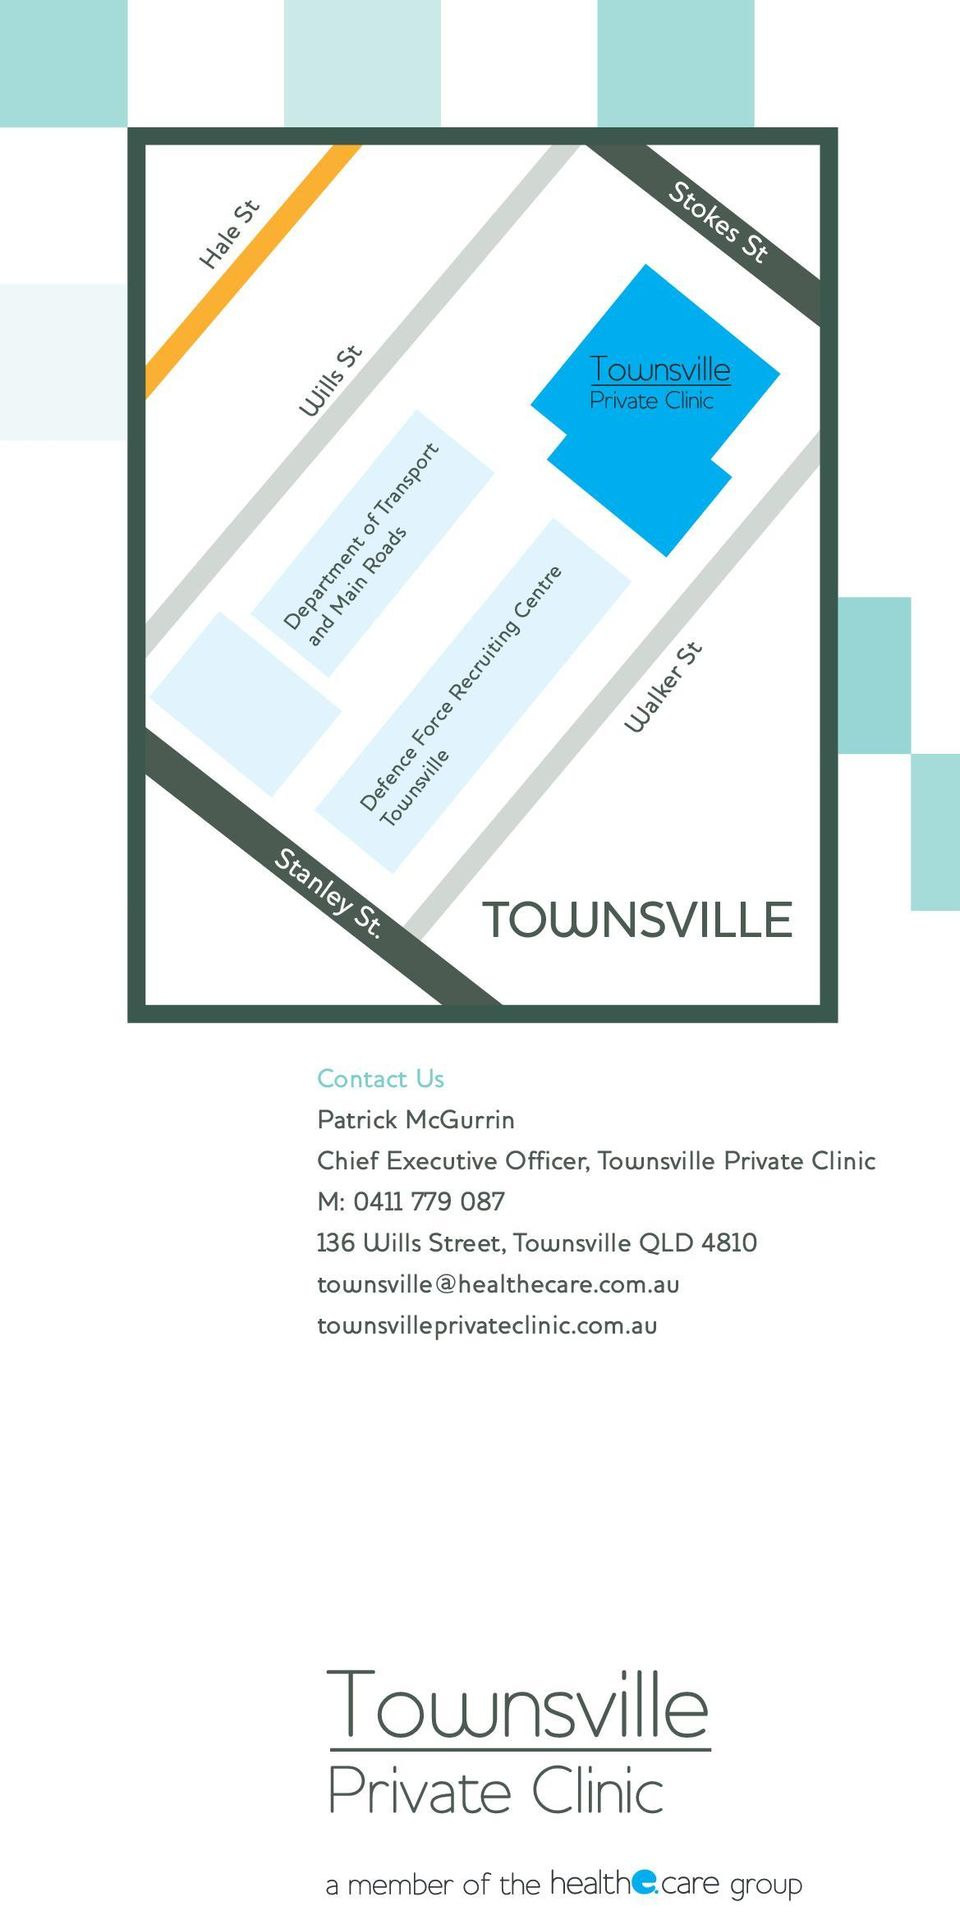 TOWNSVILLE Contact Us Patrick McGurrin Chief Executive Officer, Townsville Private